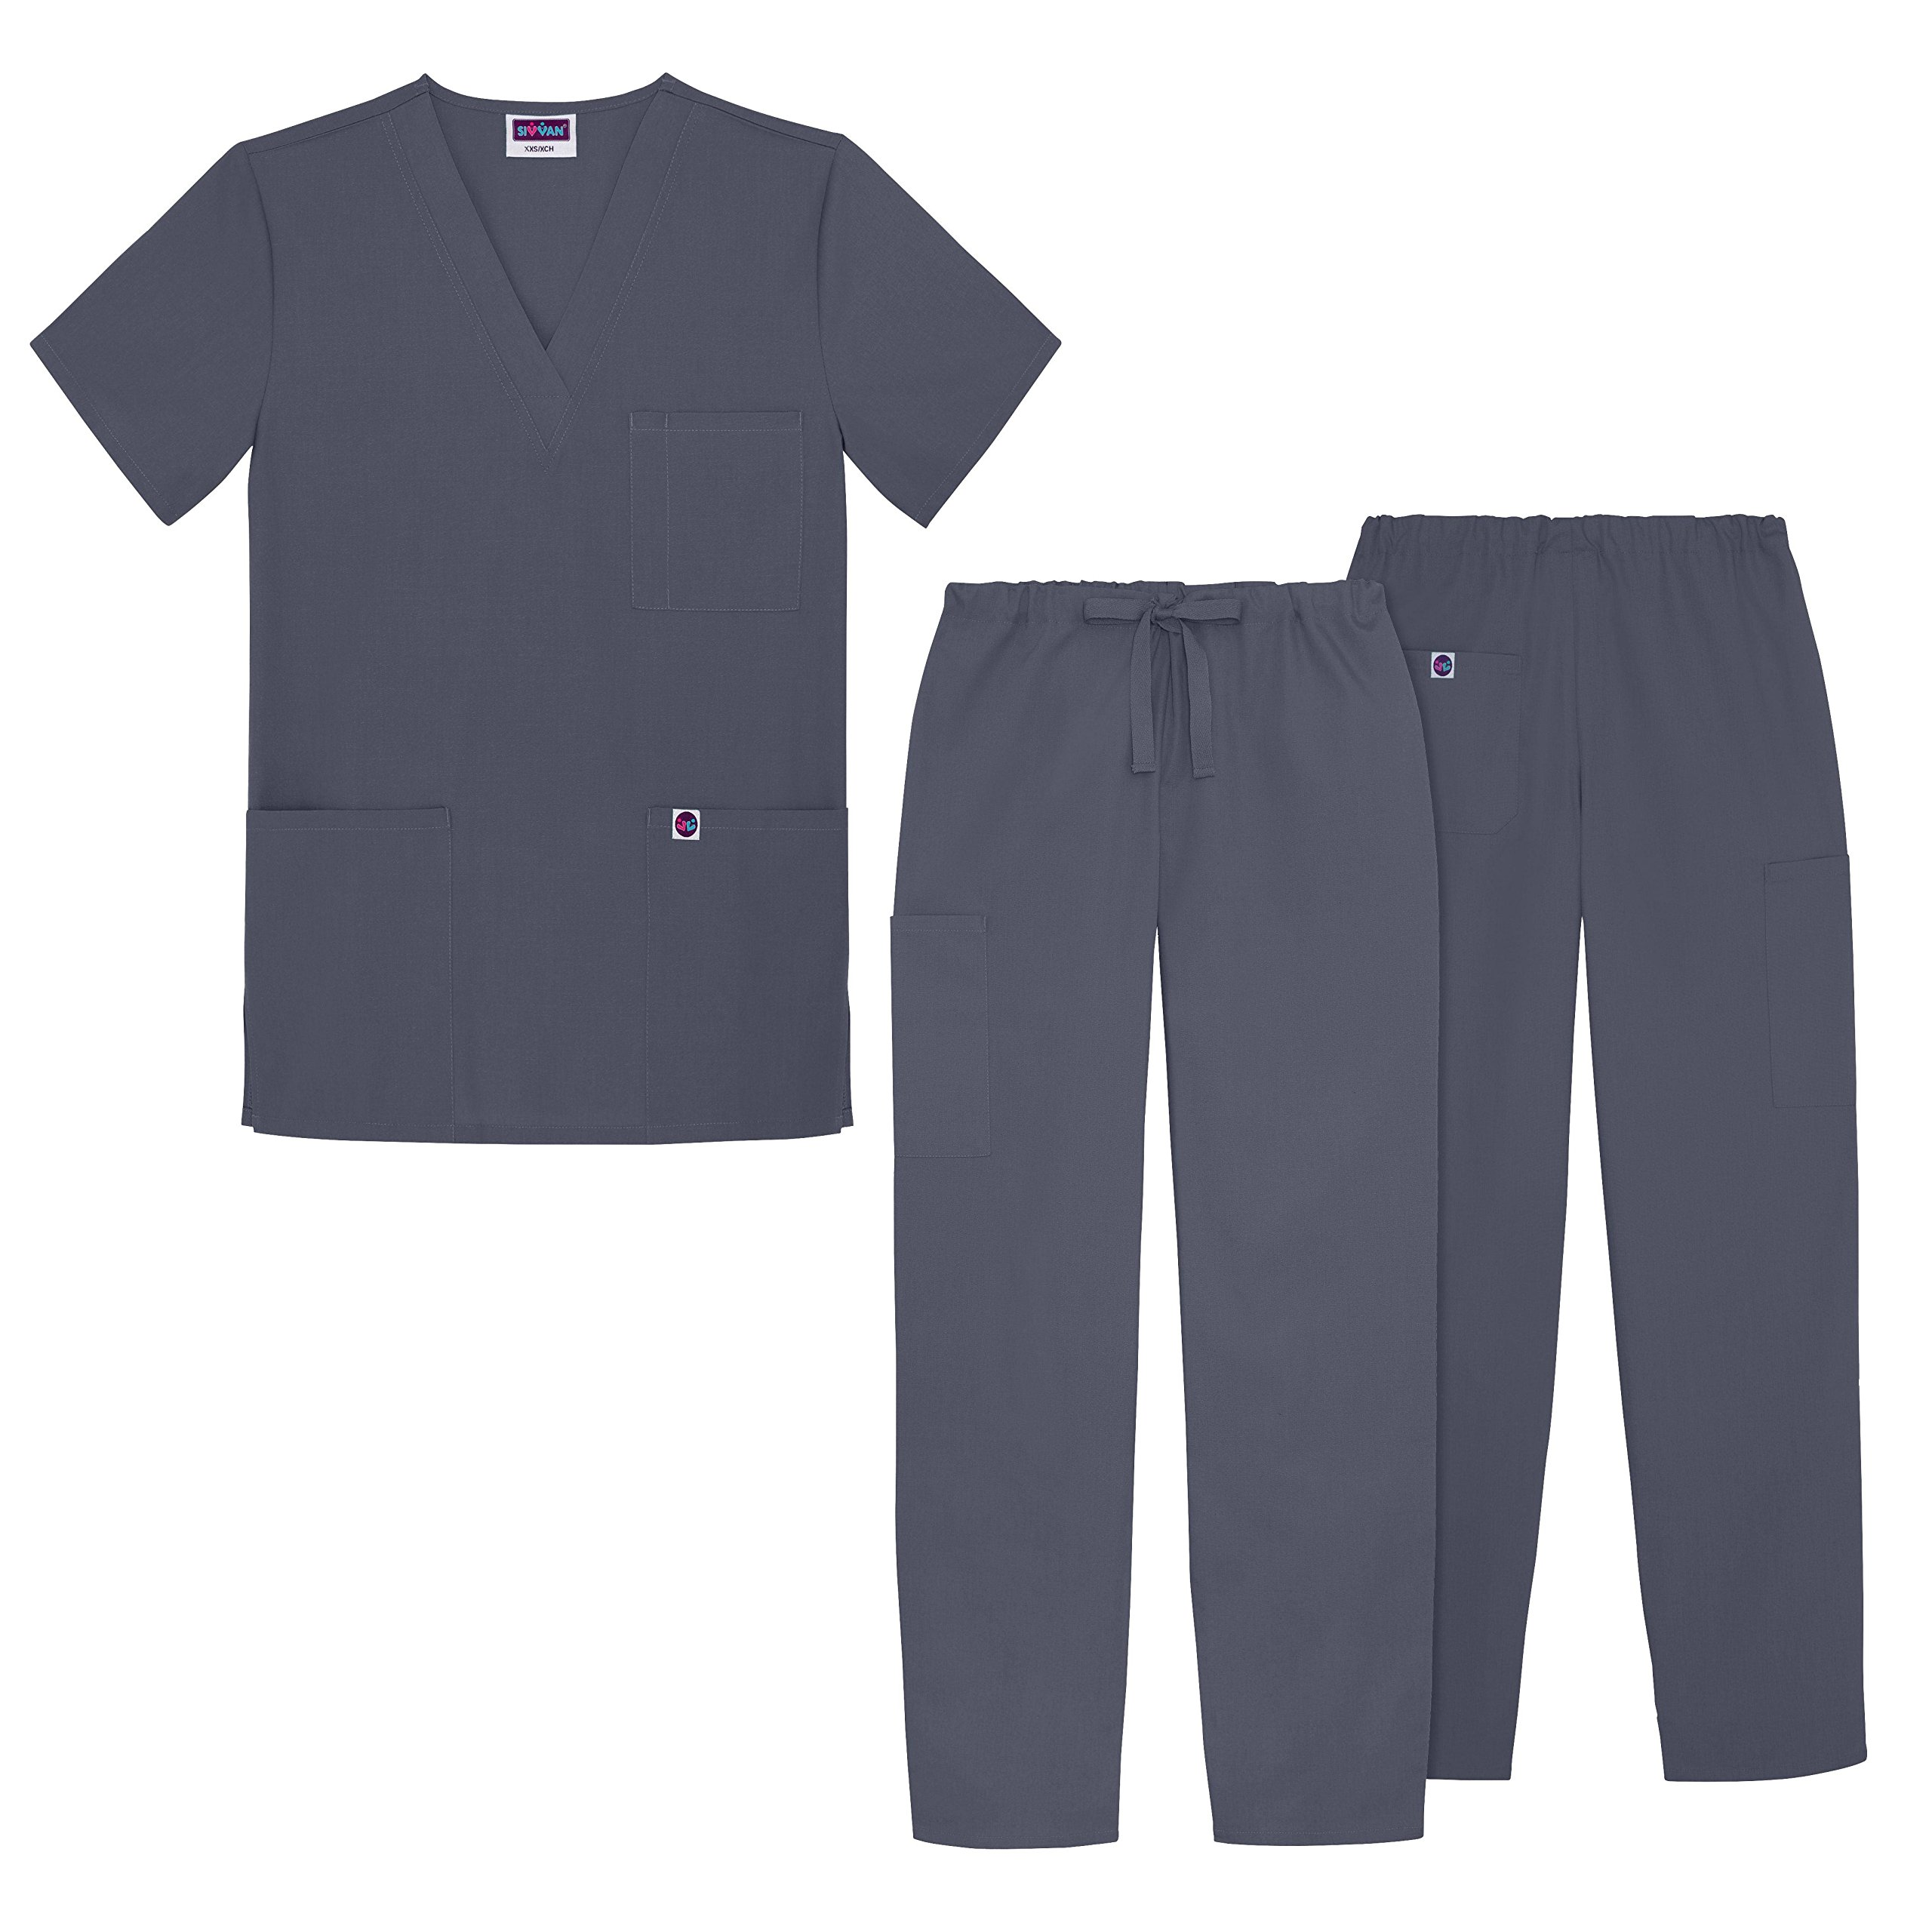 Sivvan Unisex Classic Scrub Set V-neck Top / Drawstring Pants (Available in 12 Solid Colors) - S8400 - Charcoal - XS